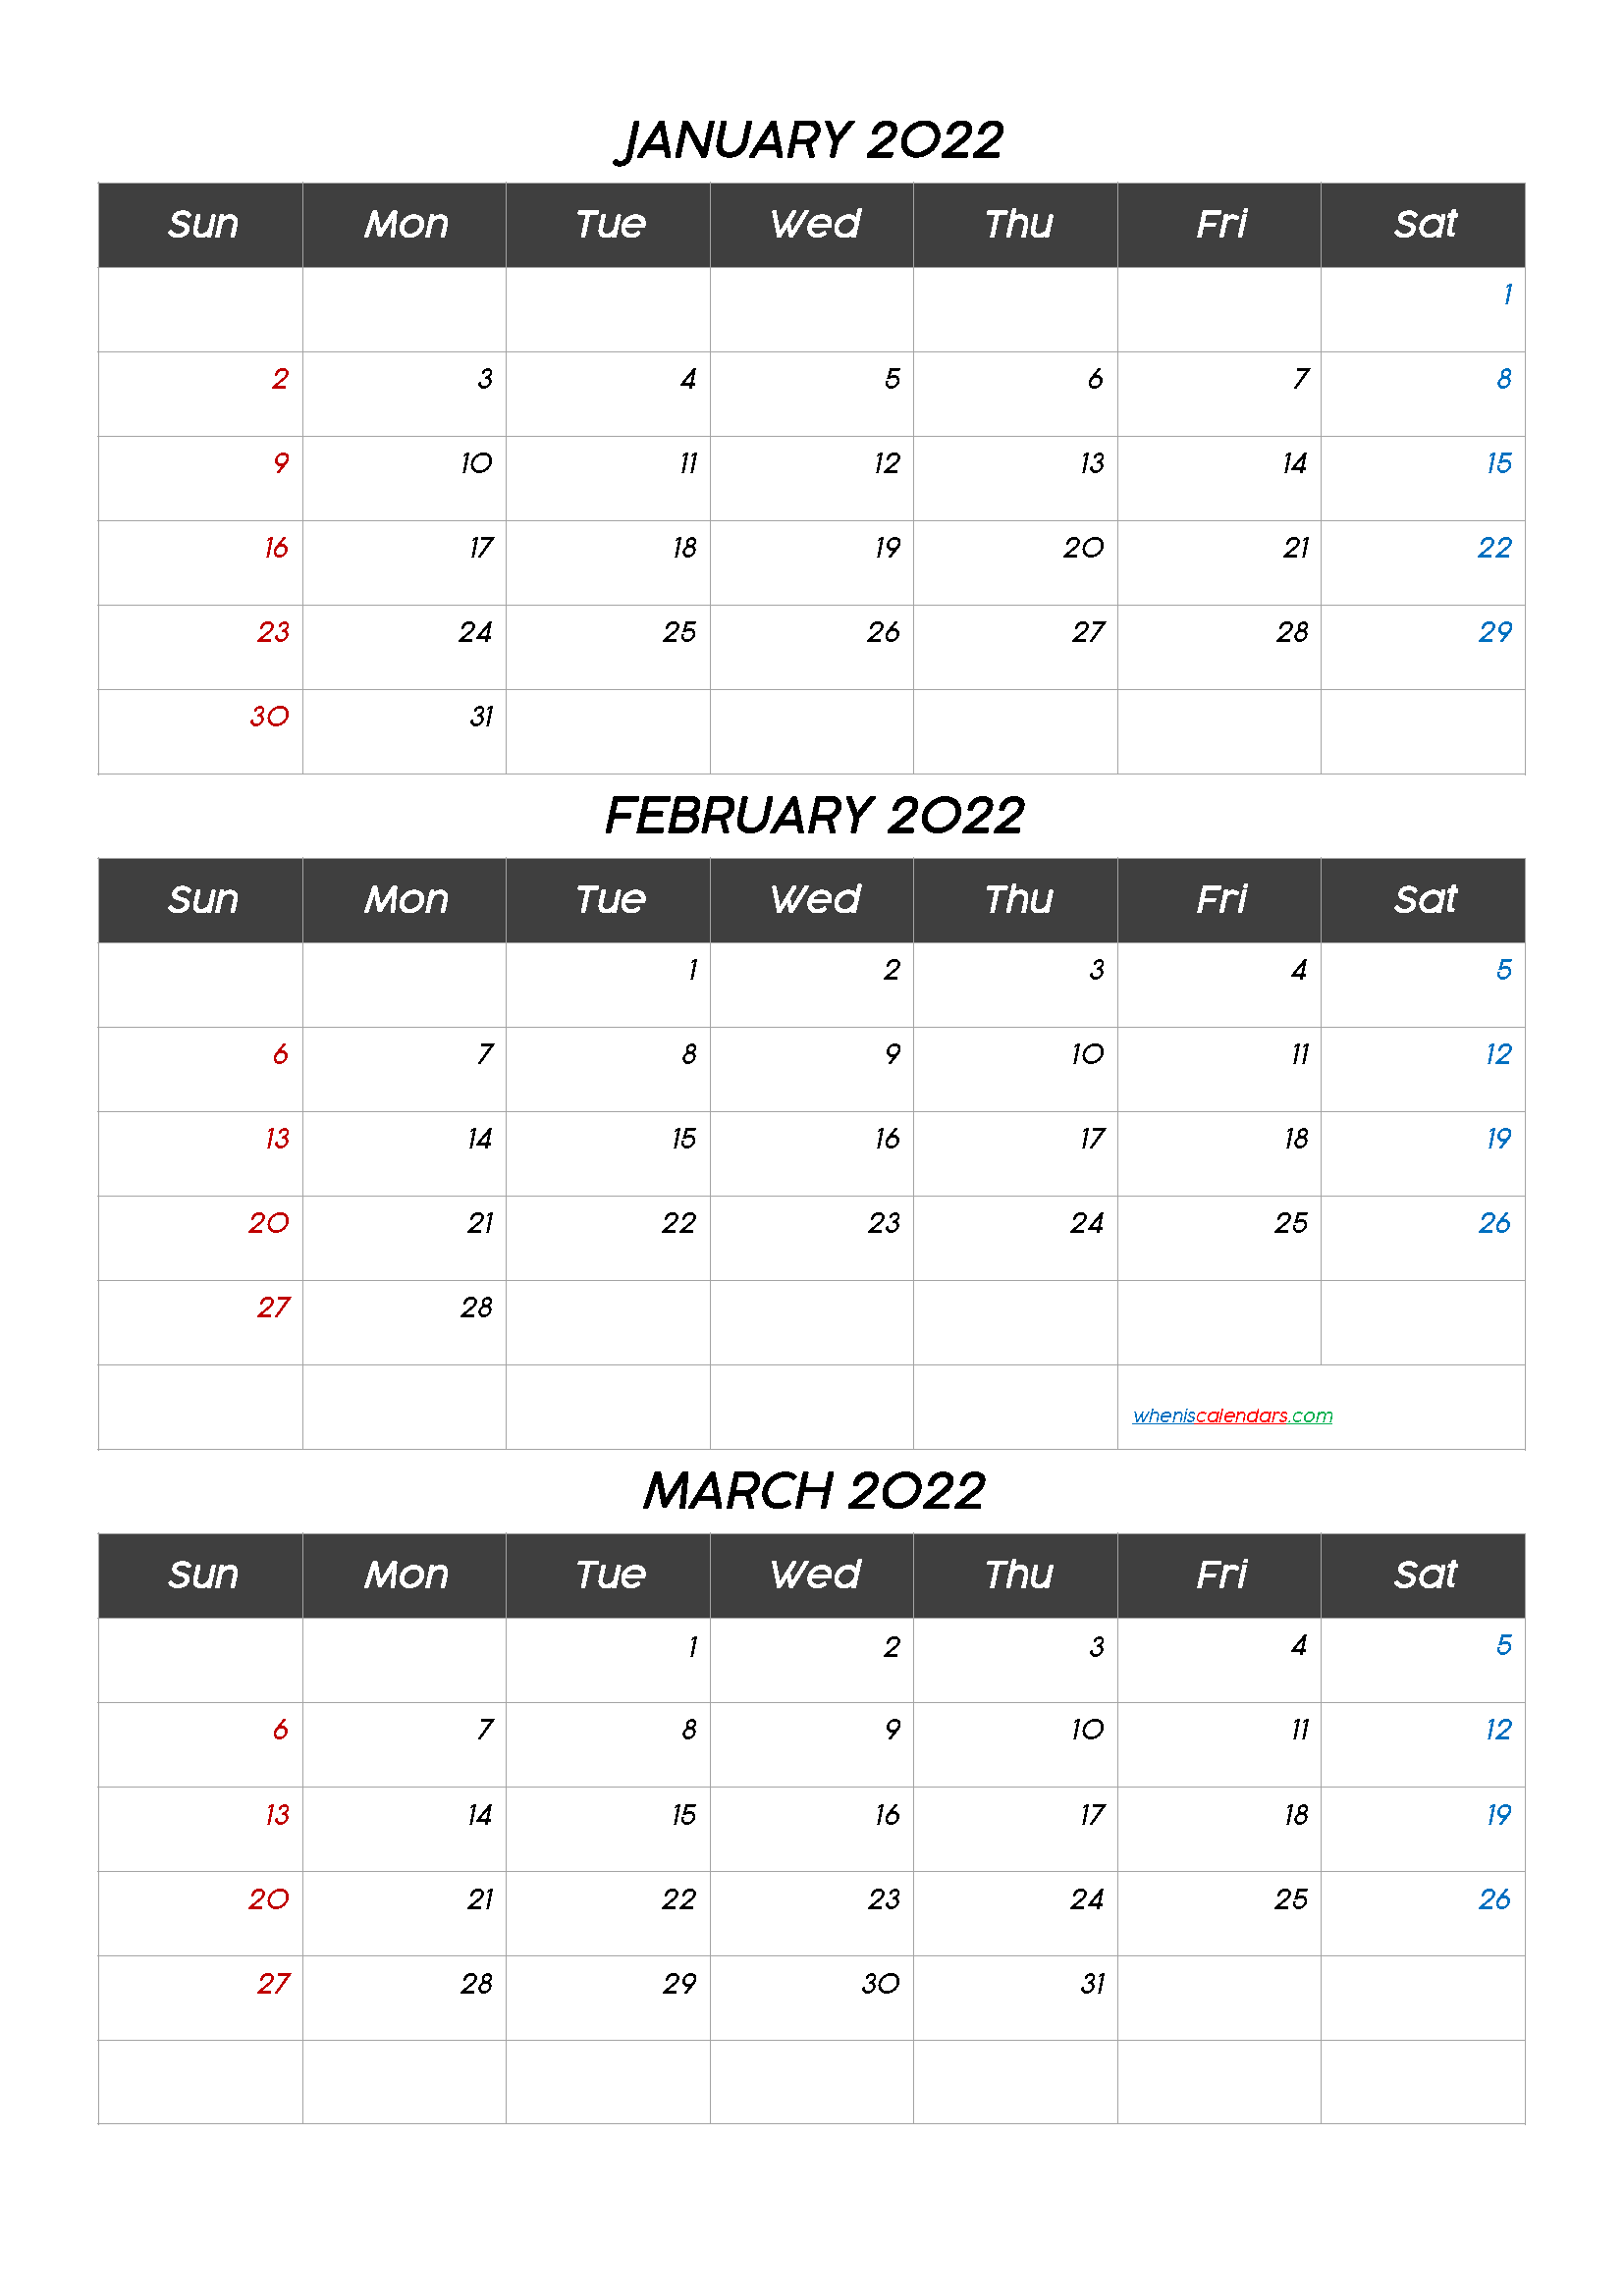 Free Printable 3 Month Calendar2022 January February March